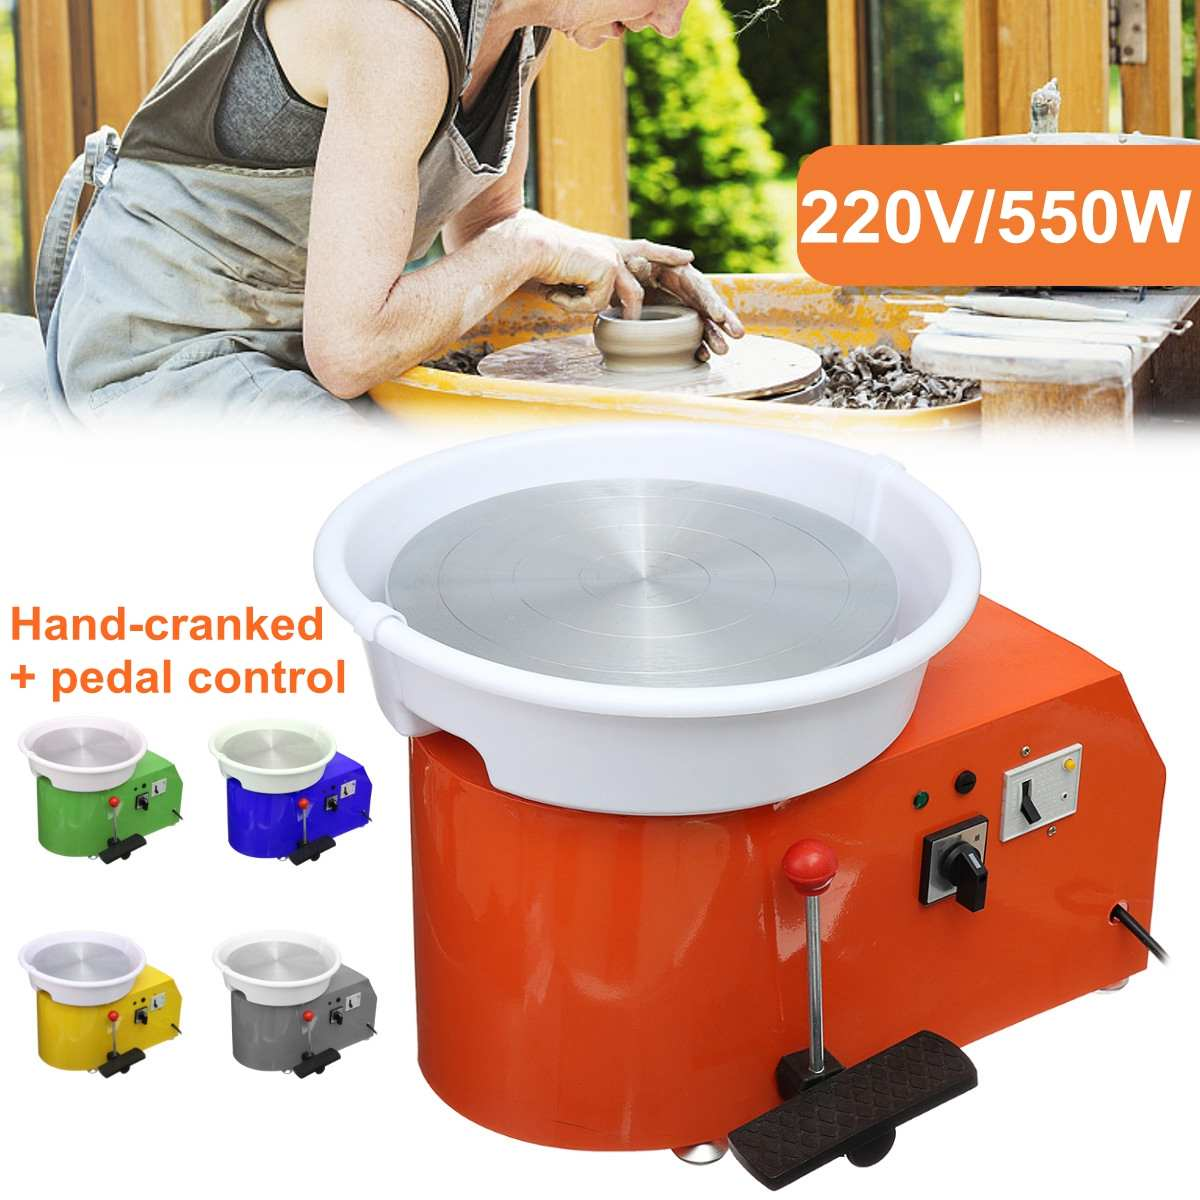 Turning Electric Pottery Wheel Ceramic Machine 220V 550W 300mm Ceramic Clay Potter Kit For Ceramic Work Ceramics